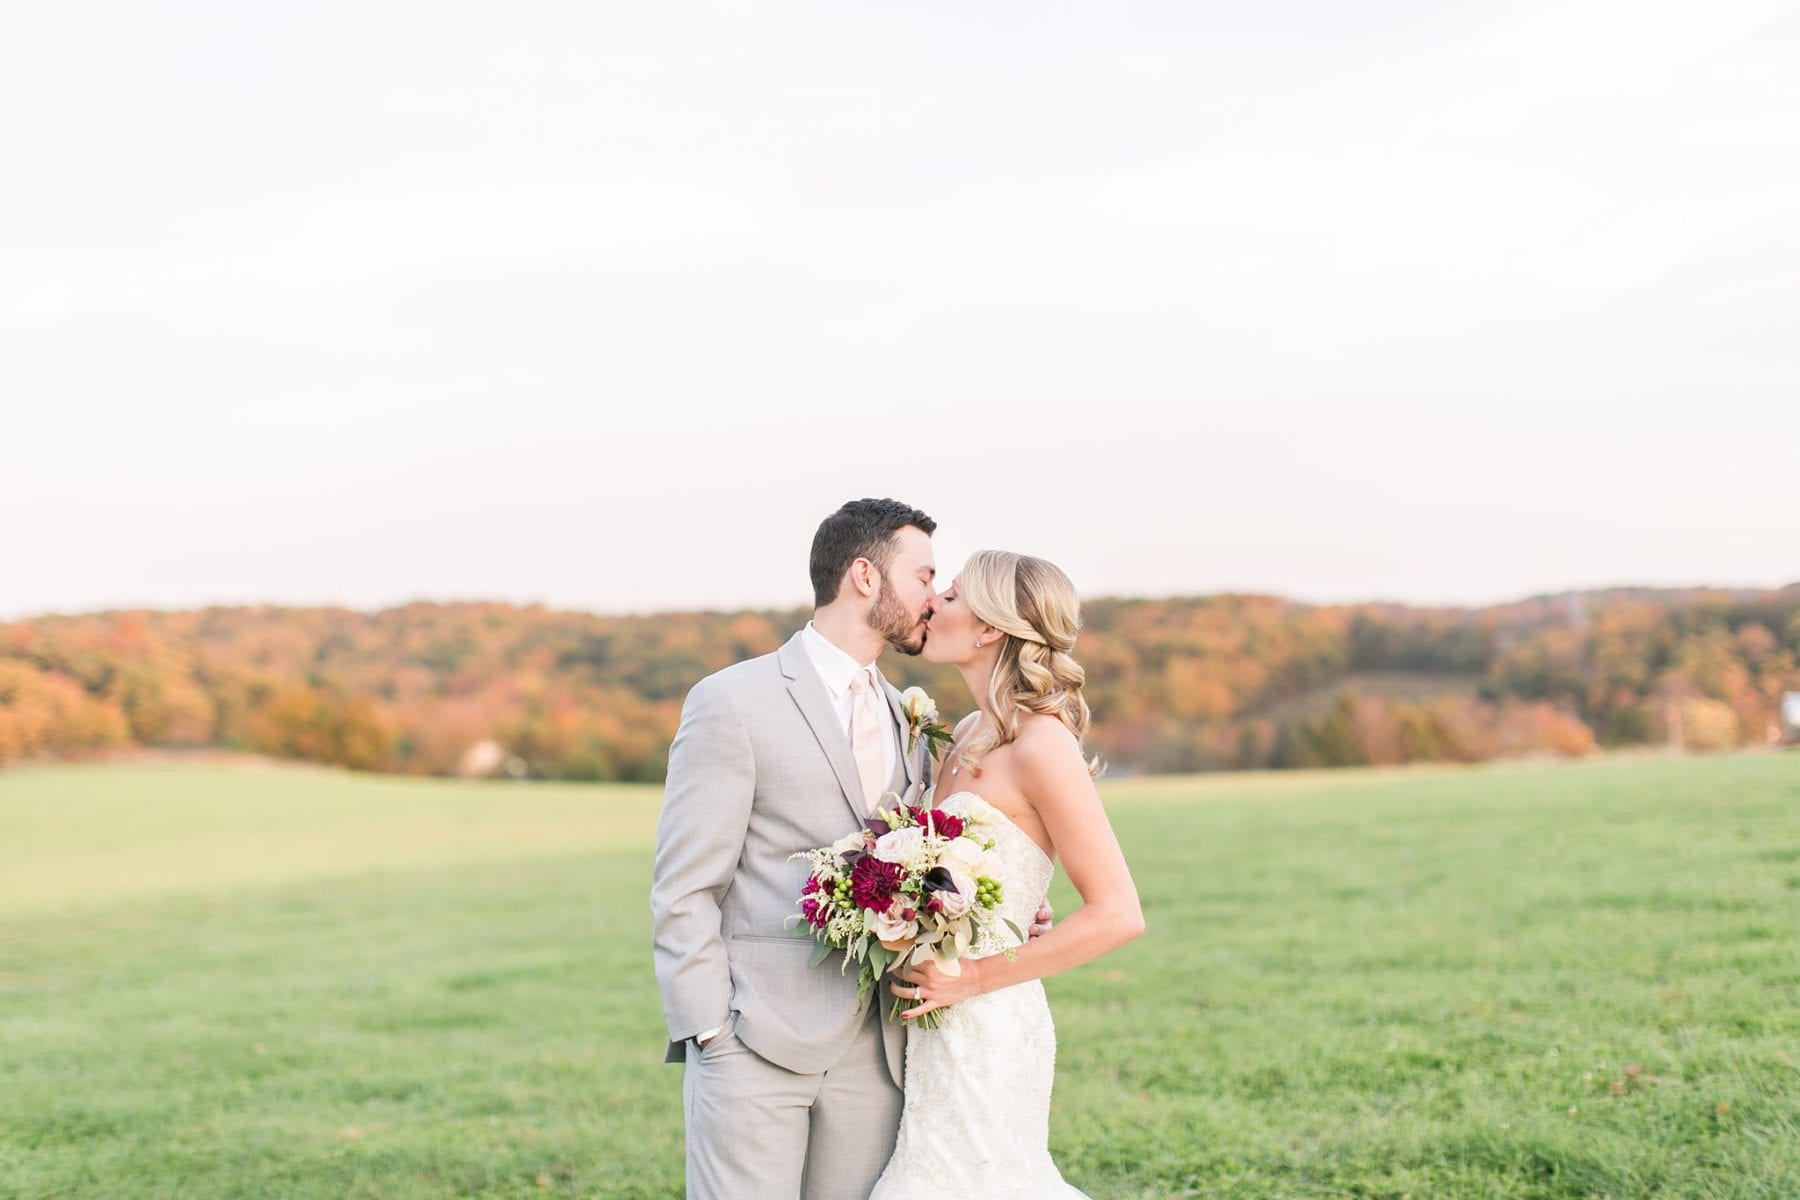 Wyndridge Farm Wedding Photos Dallastown Pennsylvania Wedding Photographer Megan Kelsey Photography Heather & Matt-687.jpg